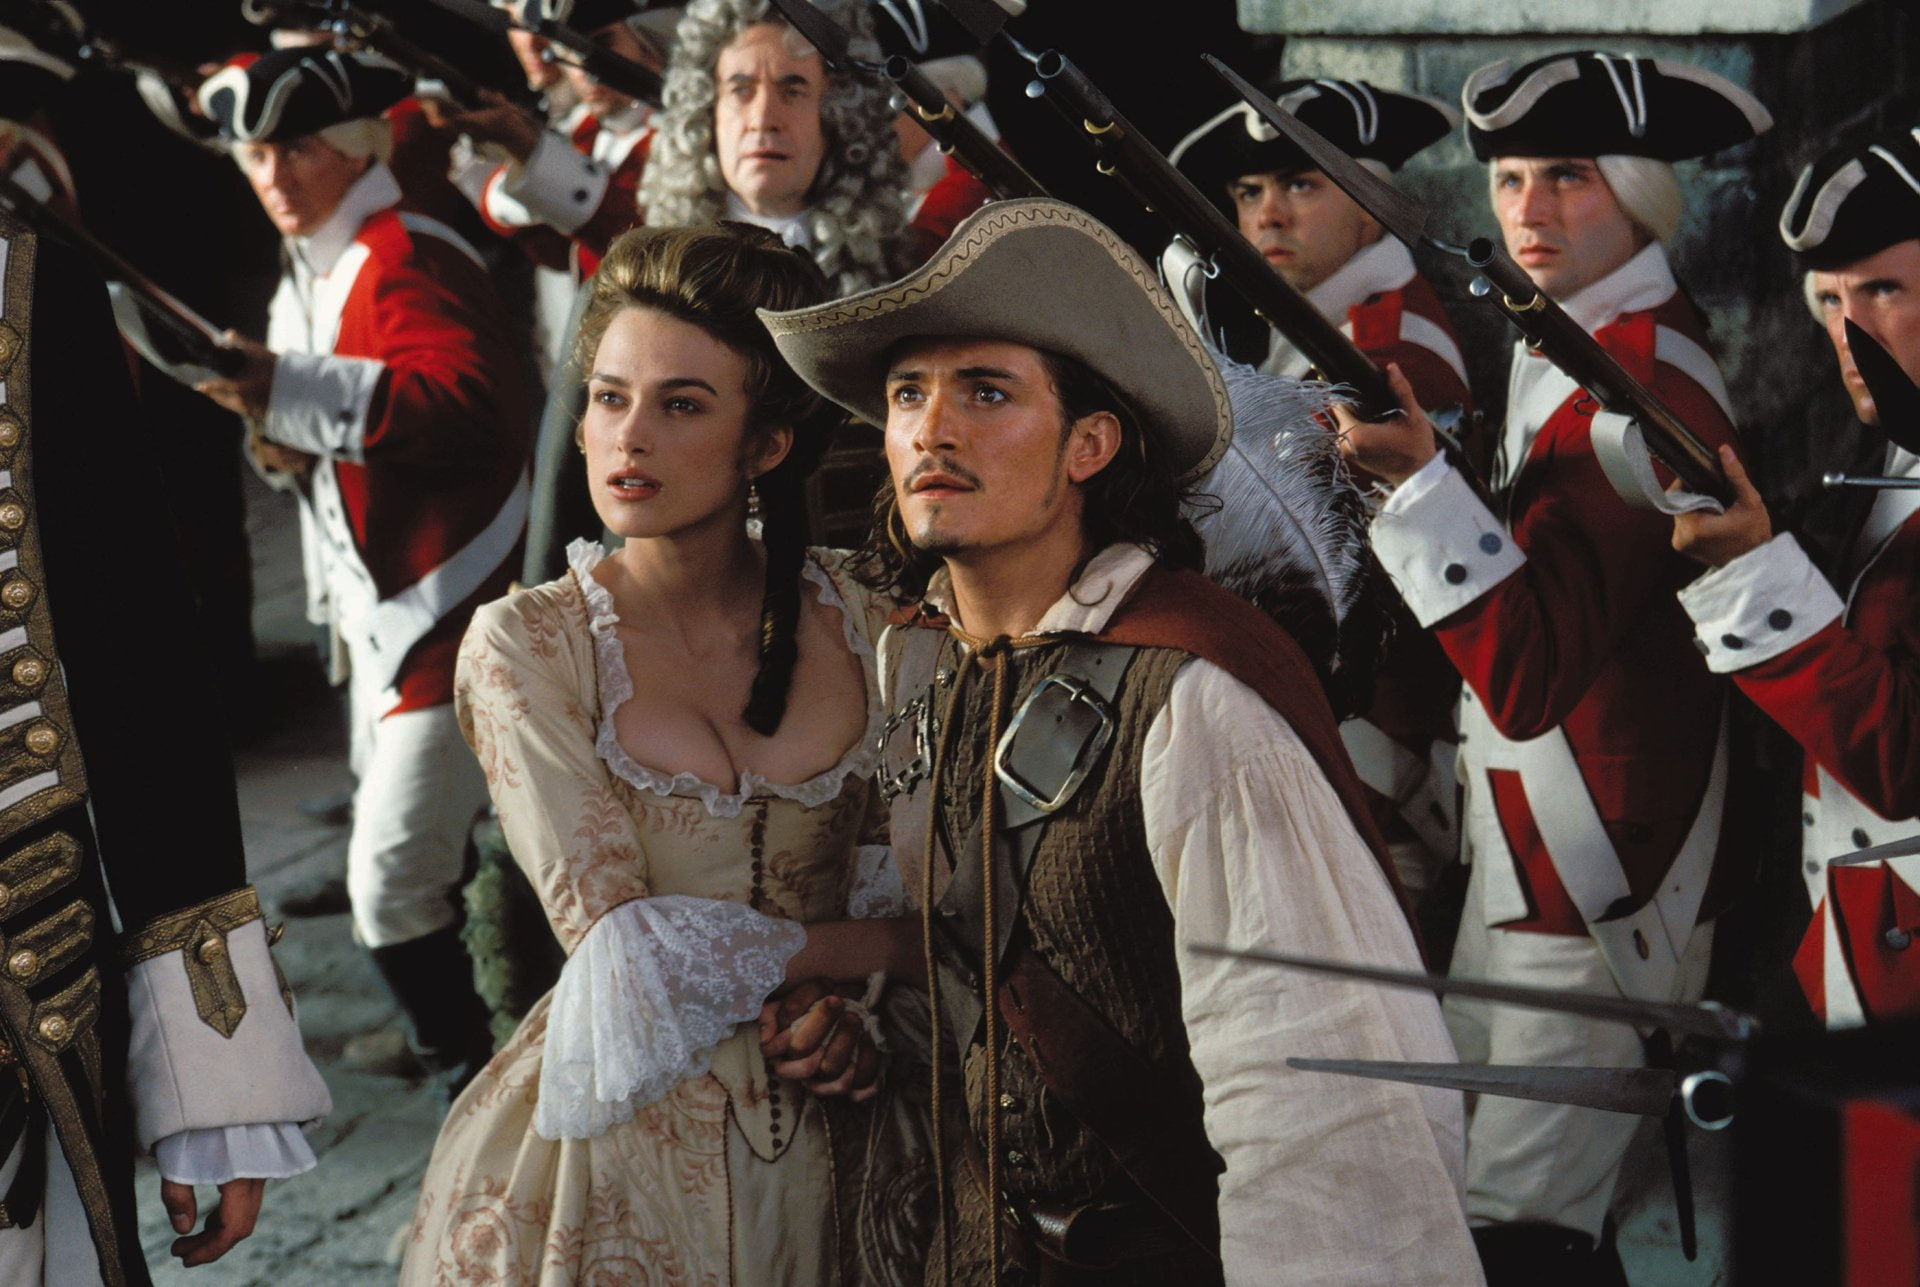 Elizabeth Swann (Keira Knightley) and Will Turner (Orlando Bloom) with the British Navy and Governor Swann (Jonathan Pryce) behind her in Pirates of the Caribbean: The Curse of the Black Pearl (2003)